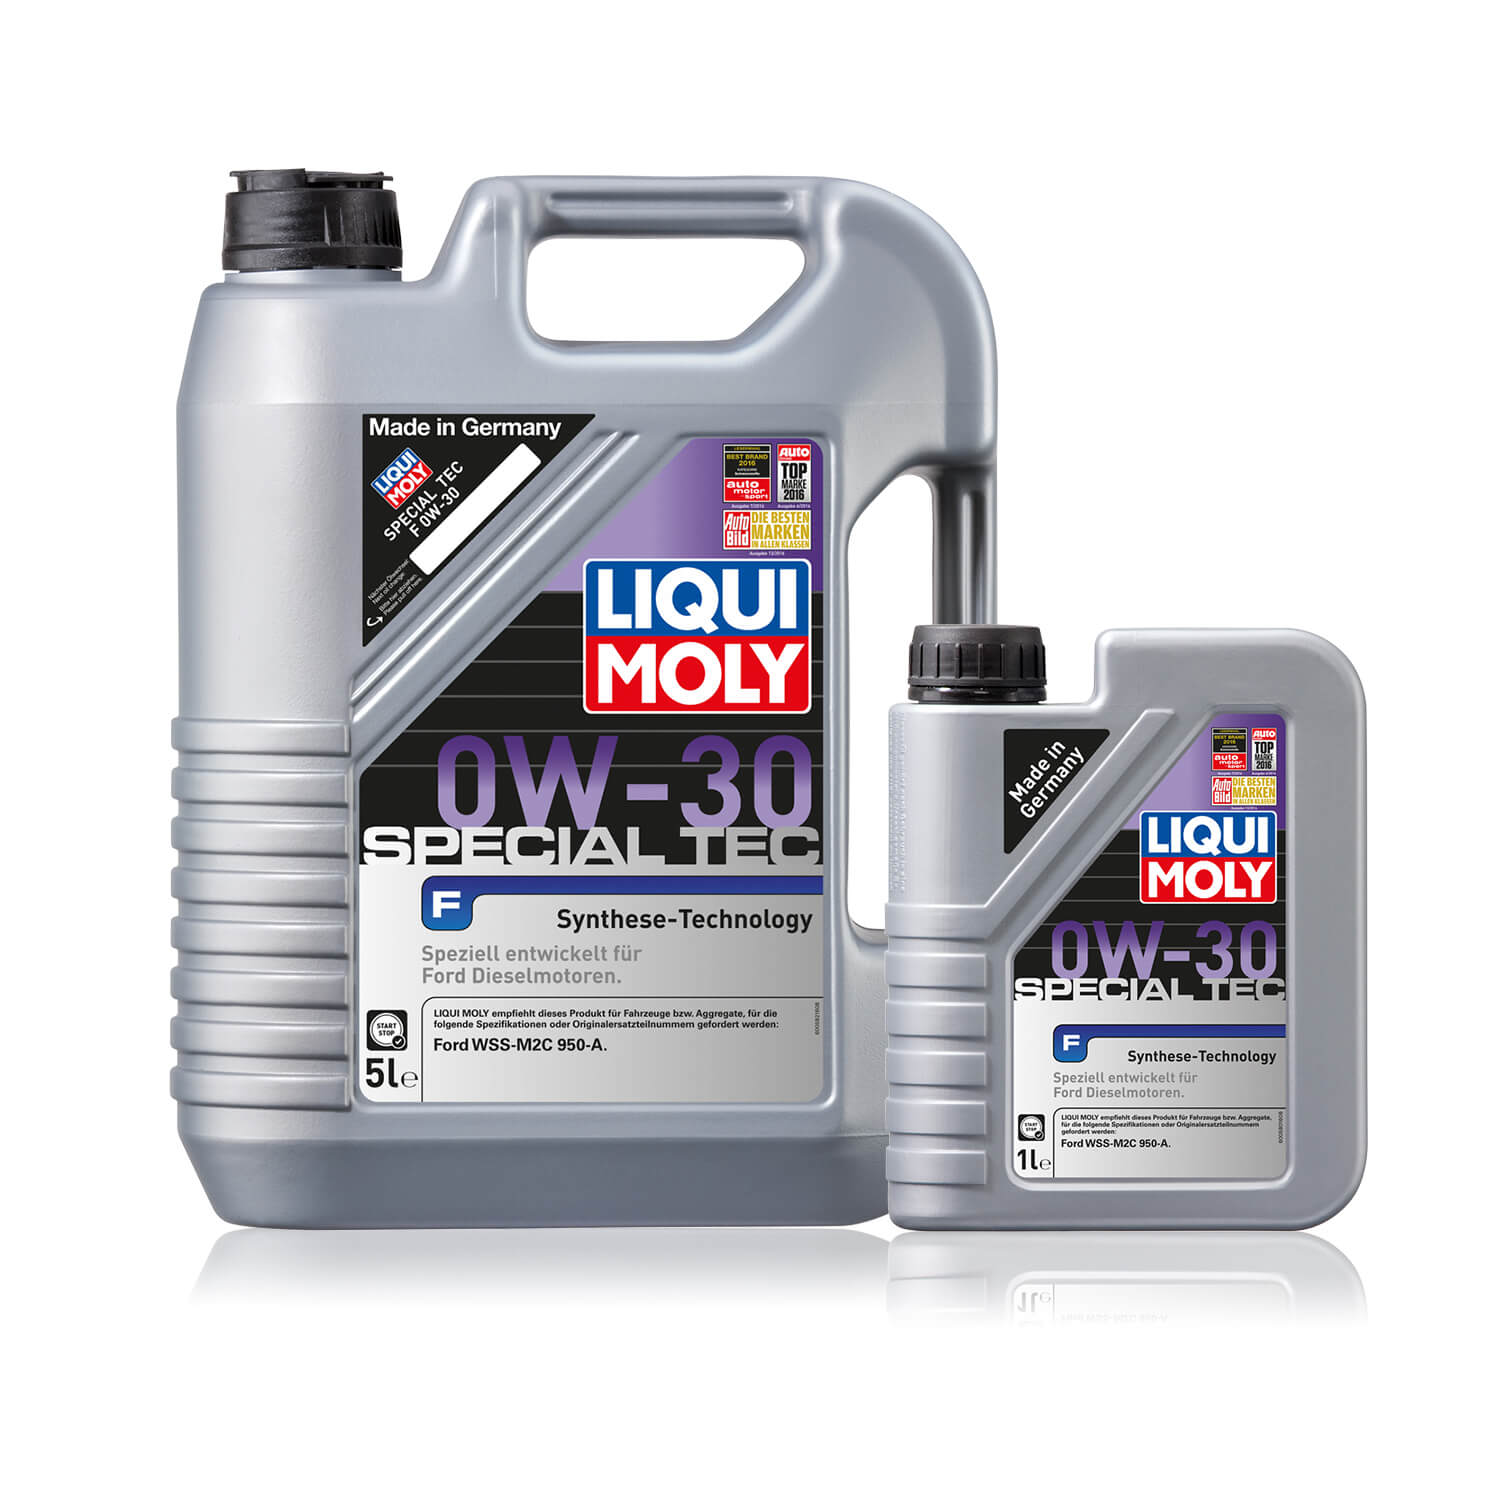 liqui moly special tec f 0w 30 f r ford tdci diesel auto motor l. Black Bedroom Furniture Sets. Home Design Ideas